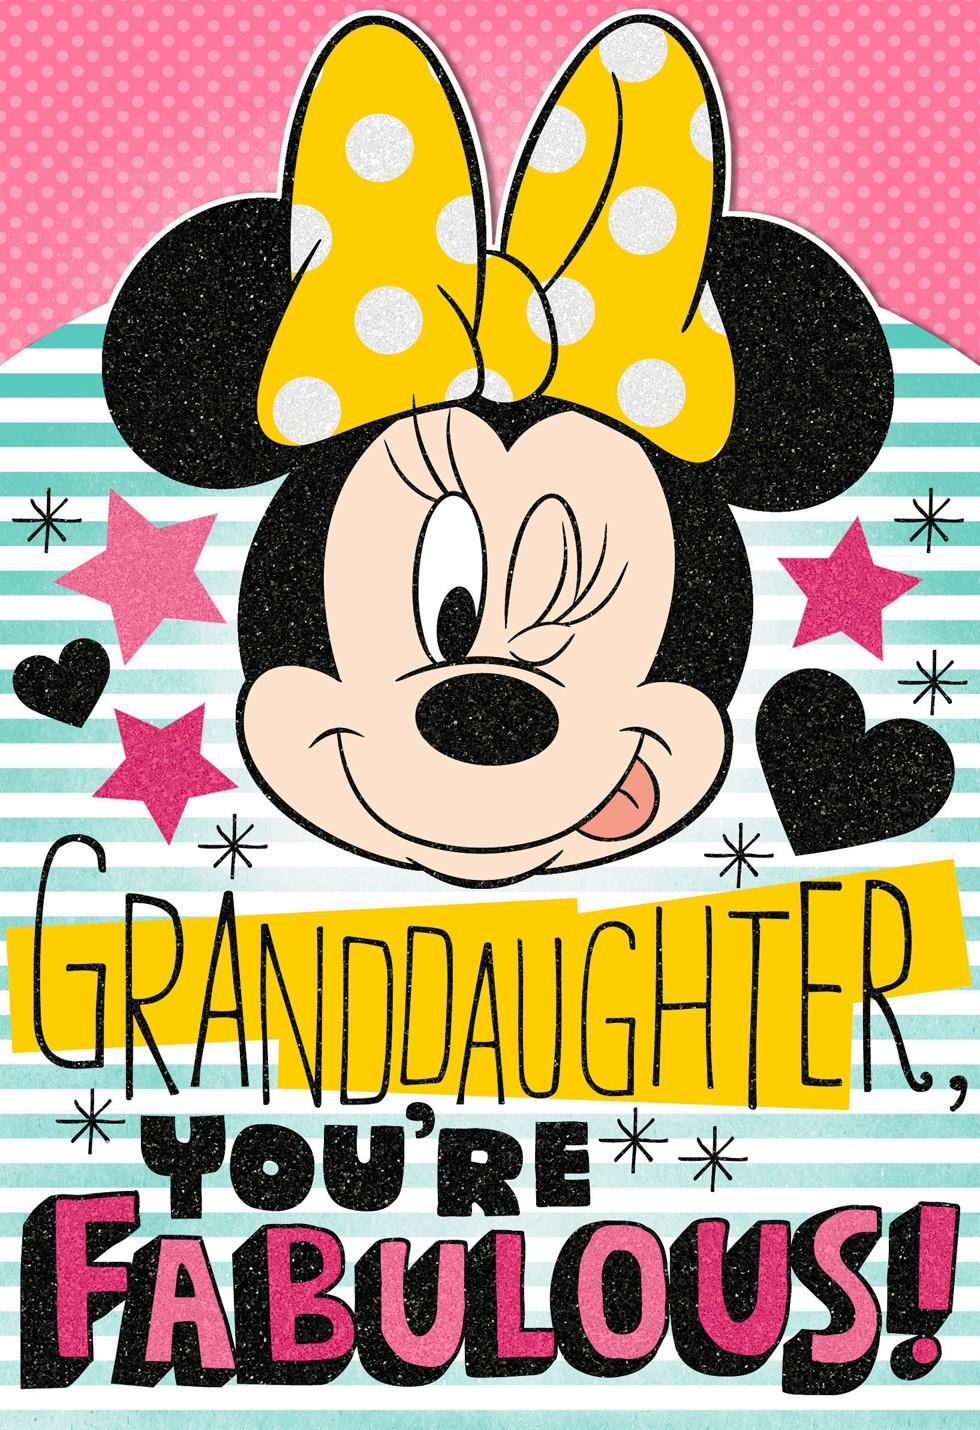 sticker birthday card ; minnie-mouse-birthday-card-with-sticker-sheet-for-granddaughter-root-399hkb1811_1470_1